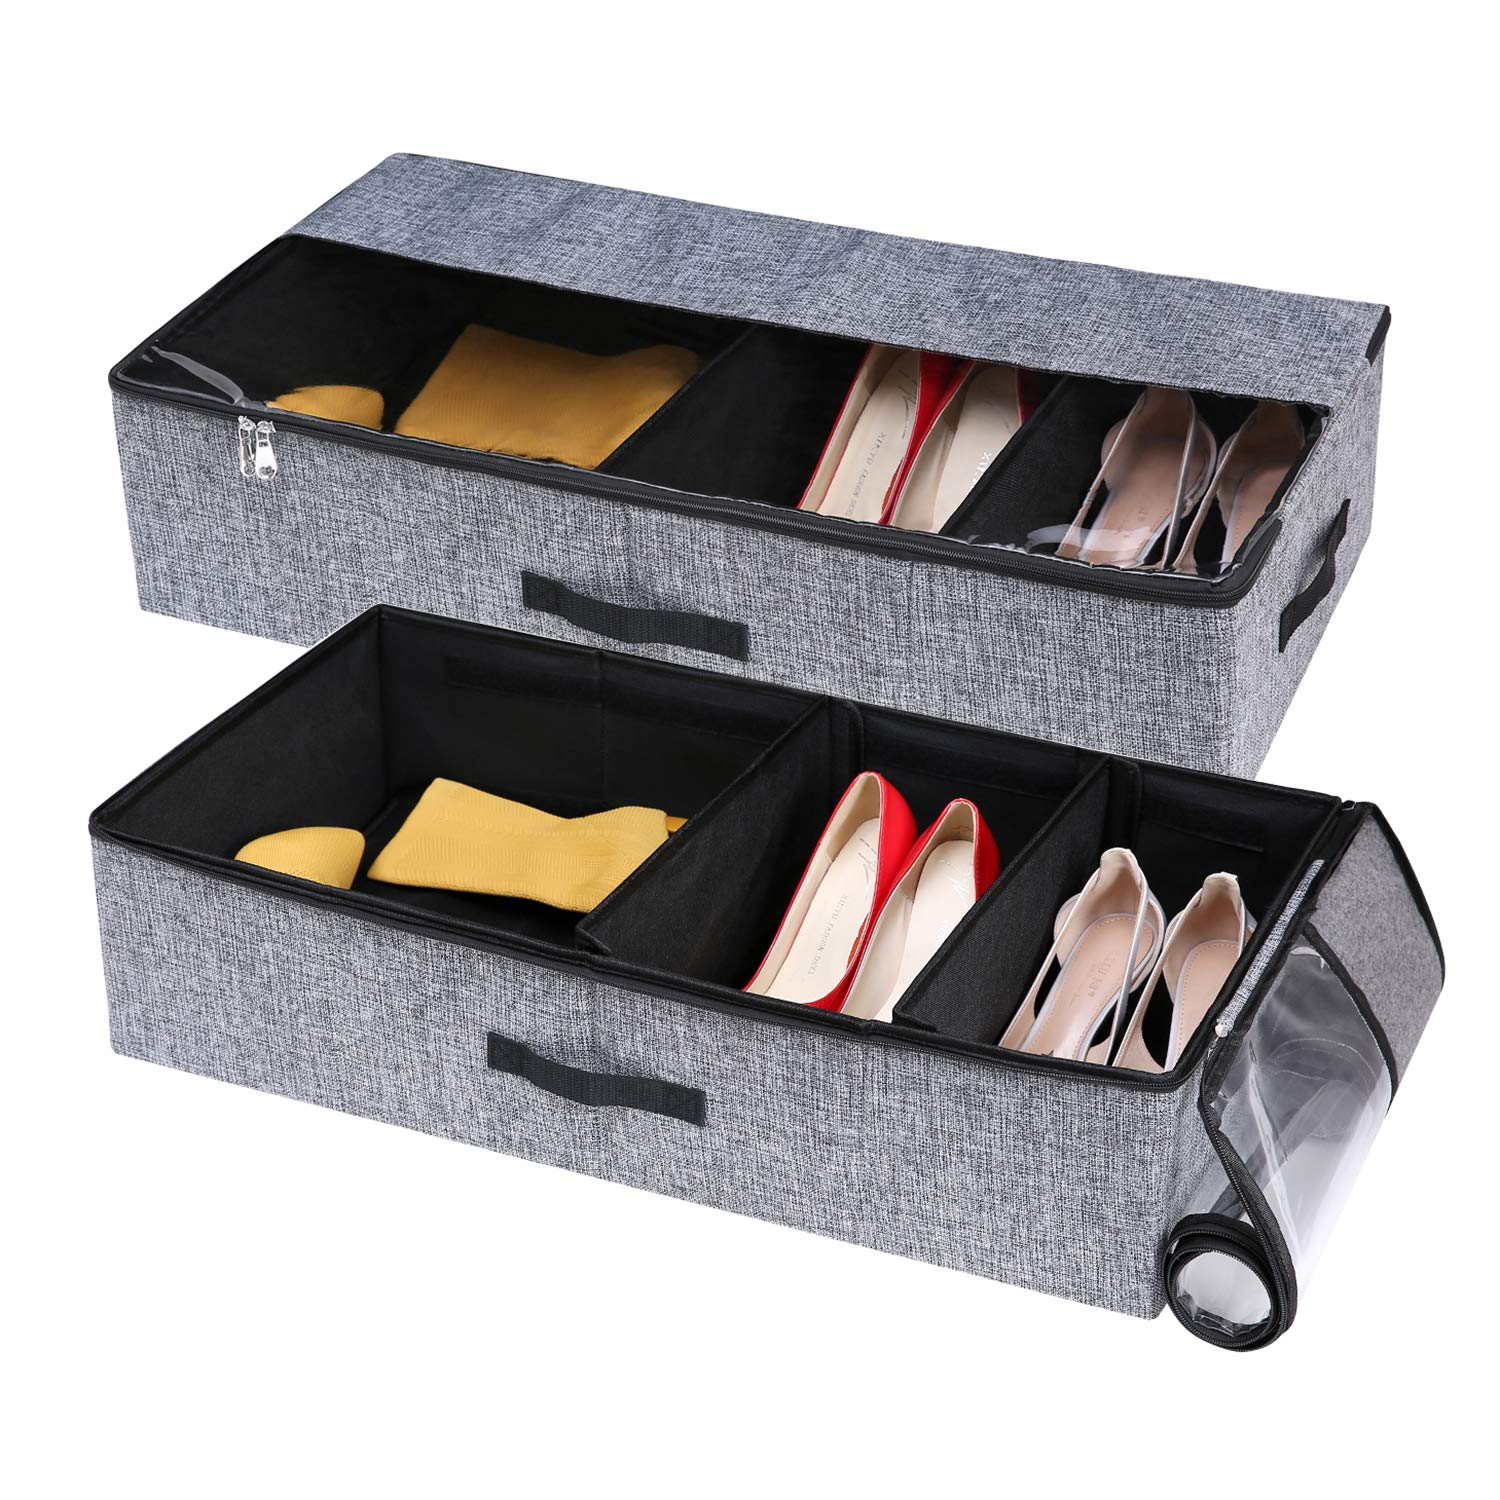 VEAMOR Under Bed Shoe Storage Boxes,Storage Containers Bags for Clothes Sheets Blankets with Adjustable Dividers(Grey 2pcs) by VEAMOR